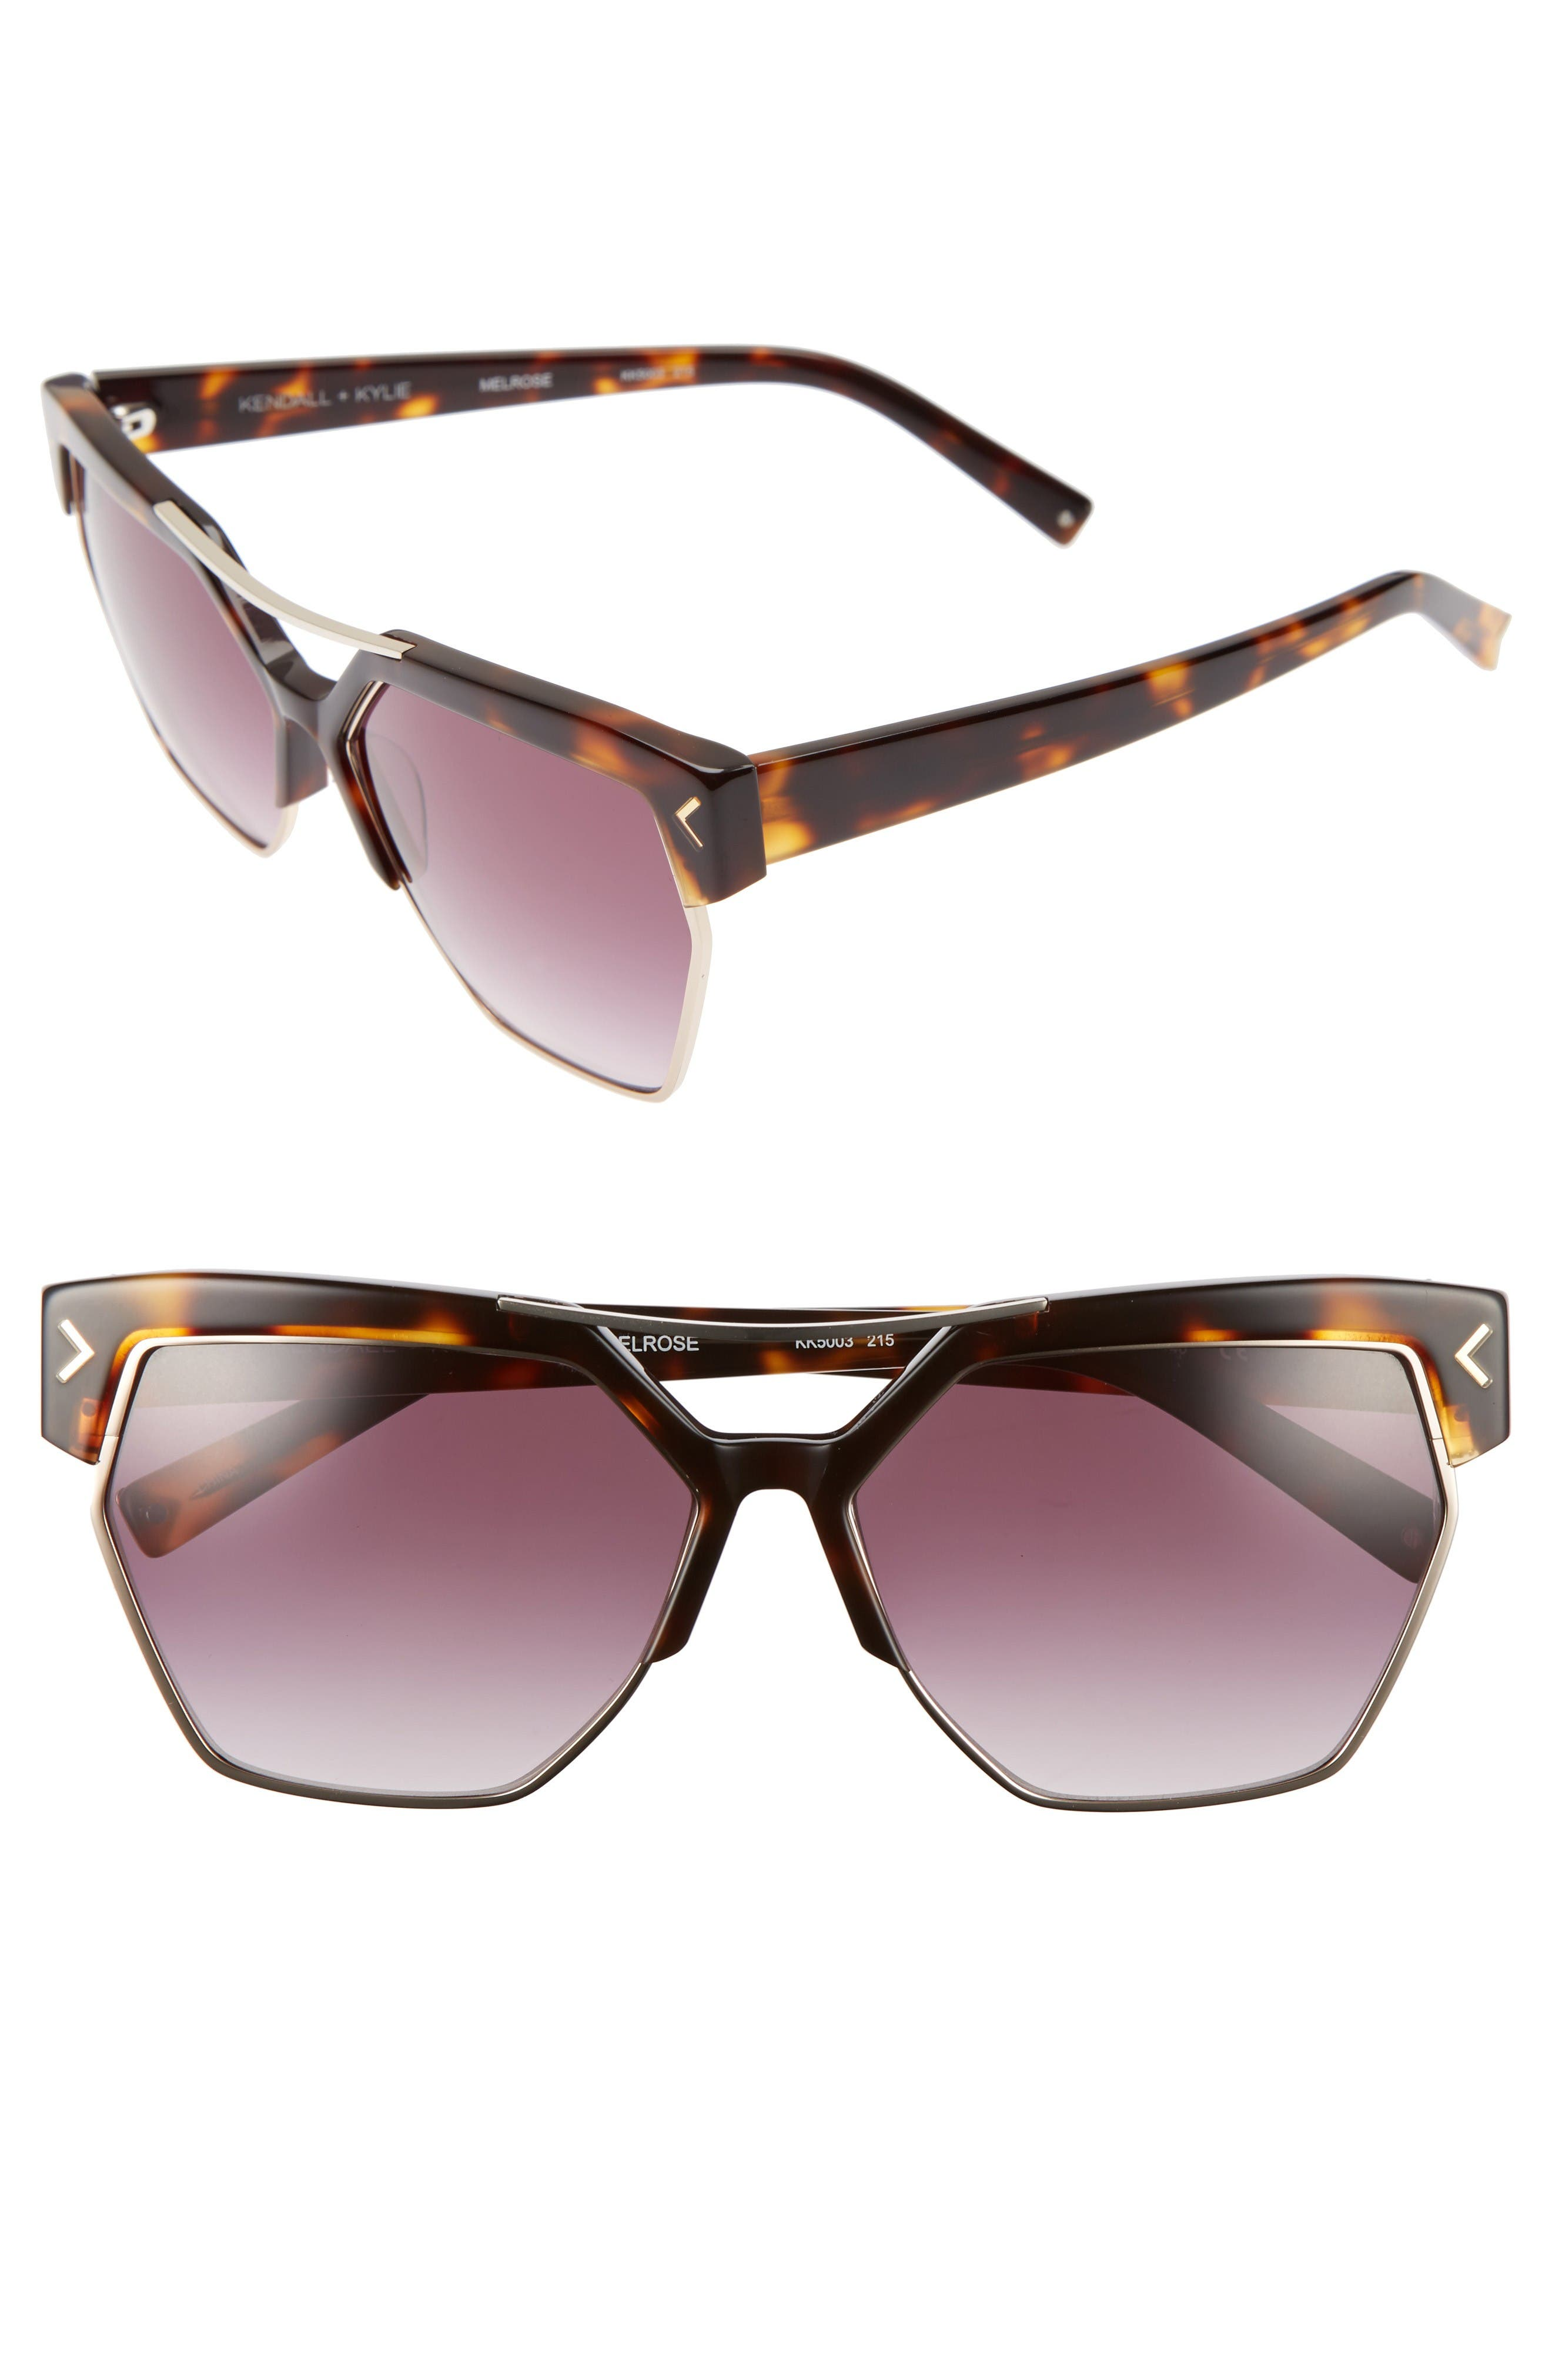 55mm Retro Sunglasses,                             Main thumbnail 1, color,                             Dark Demi/ Shiny Gold